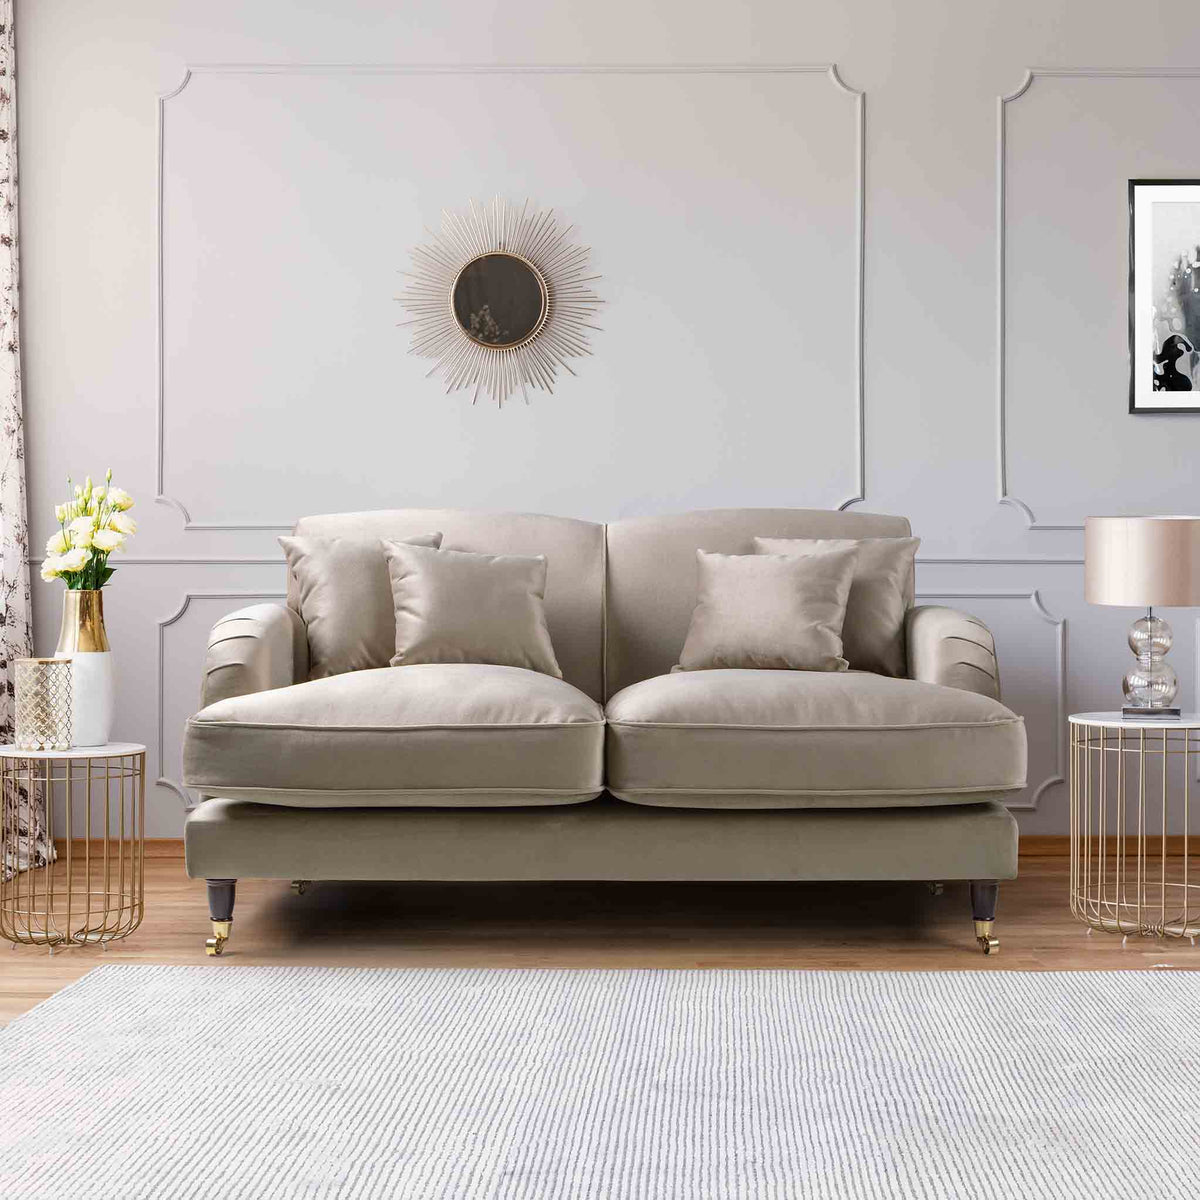 Piper Putty Velvet 2 Seater Sofa lifestyle image